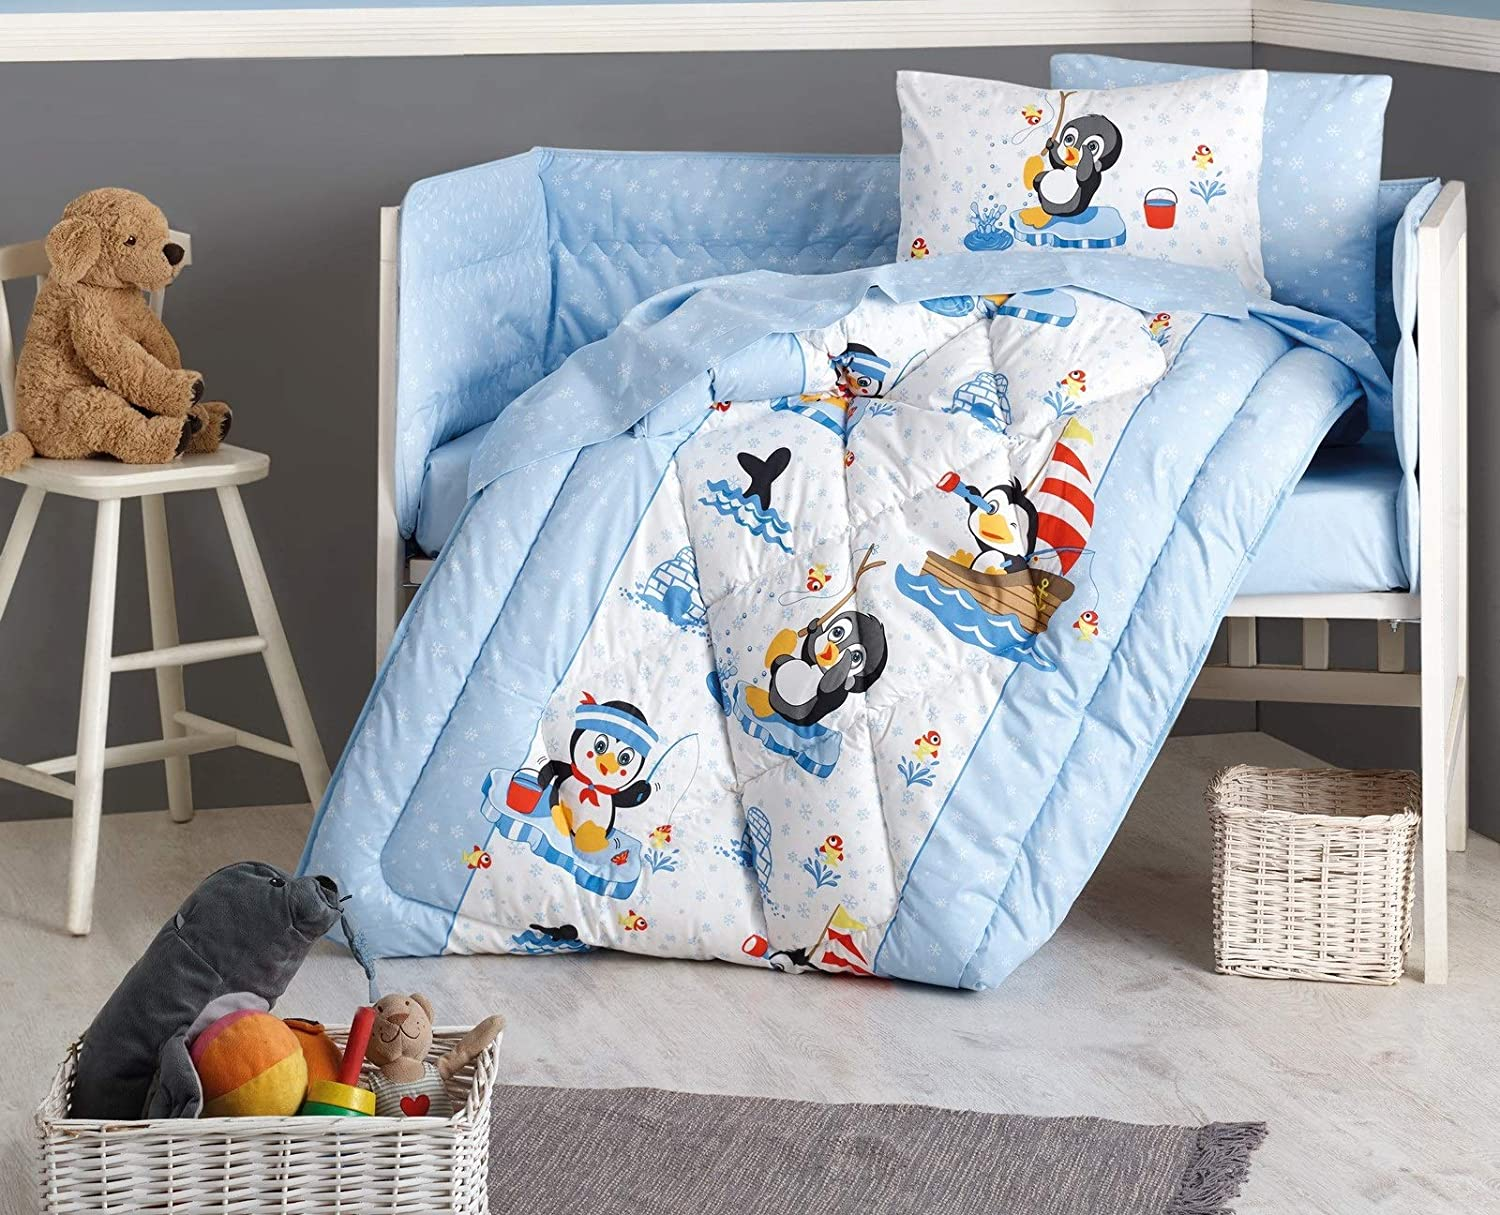 DecoMood Penguins - 100% Cotton Animals Penguins Themed Nursery Crib Set for Baby Boys and Girls, 6 Pieces Baby Comforter/Quilt Set with Crib Bumper, Comforter, Crib Sheet, Pillowcases, Blue, Unisex